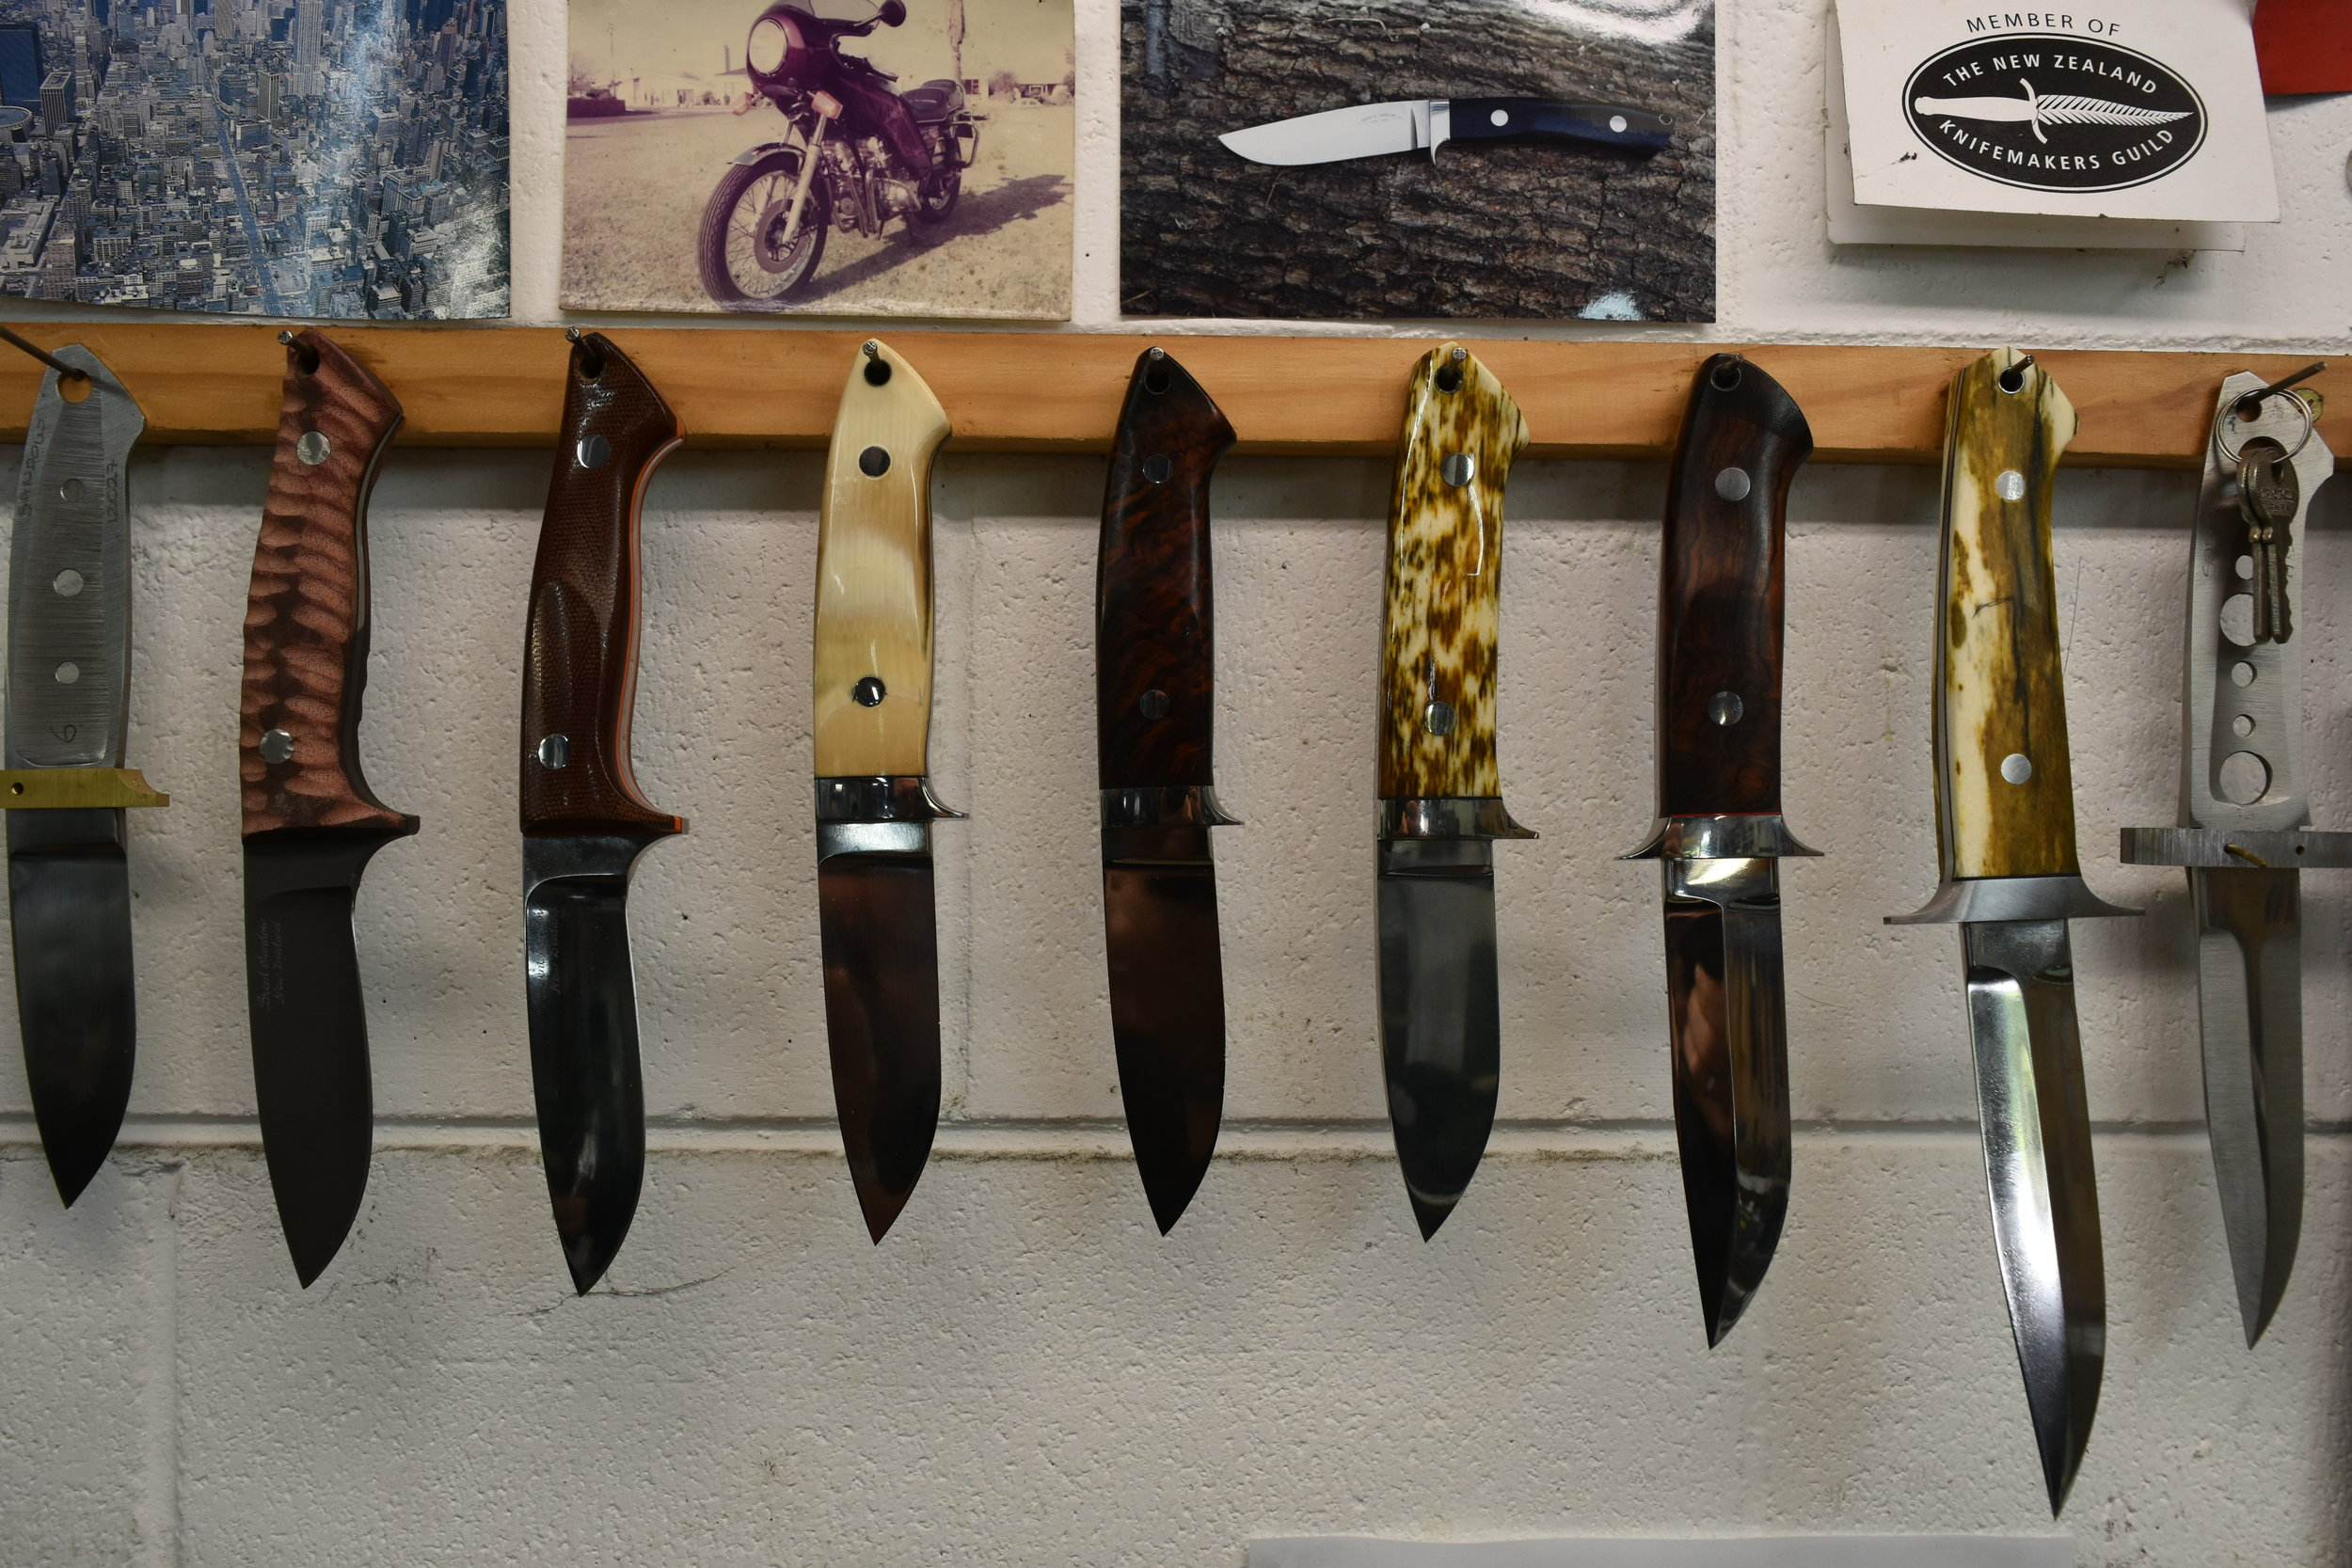 Here is a small selection of Brent's fantastic skills, a selection of Loveless-Style blades with unique handles. Second in from left a red Micatta, brown Micatta, interior Mamouth tusk, crutch Cocobolo, Giraffe bone, Arizona Ironwood and another Giraffe bone.